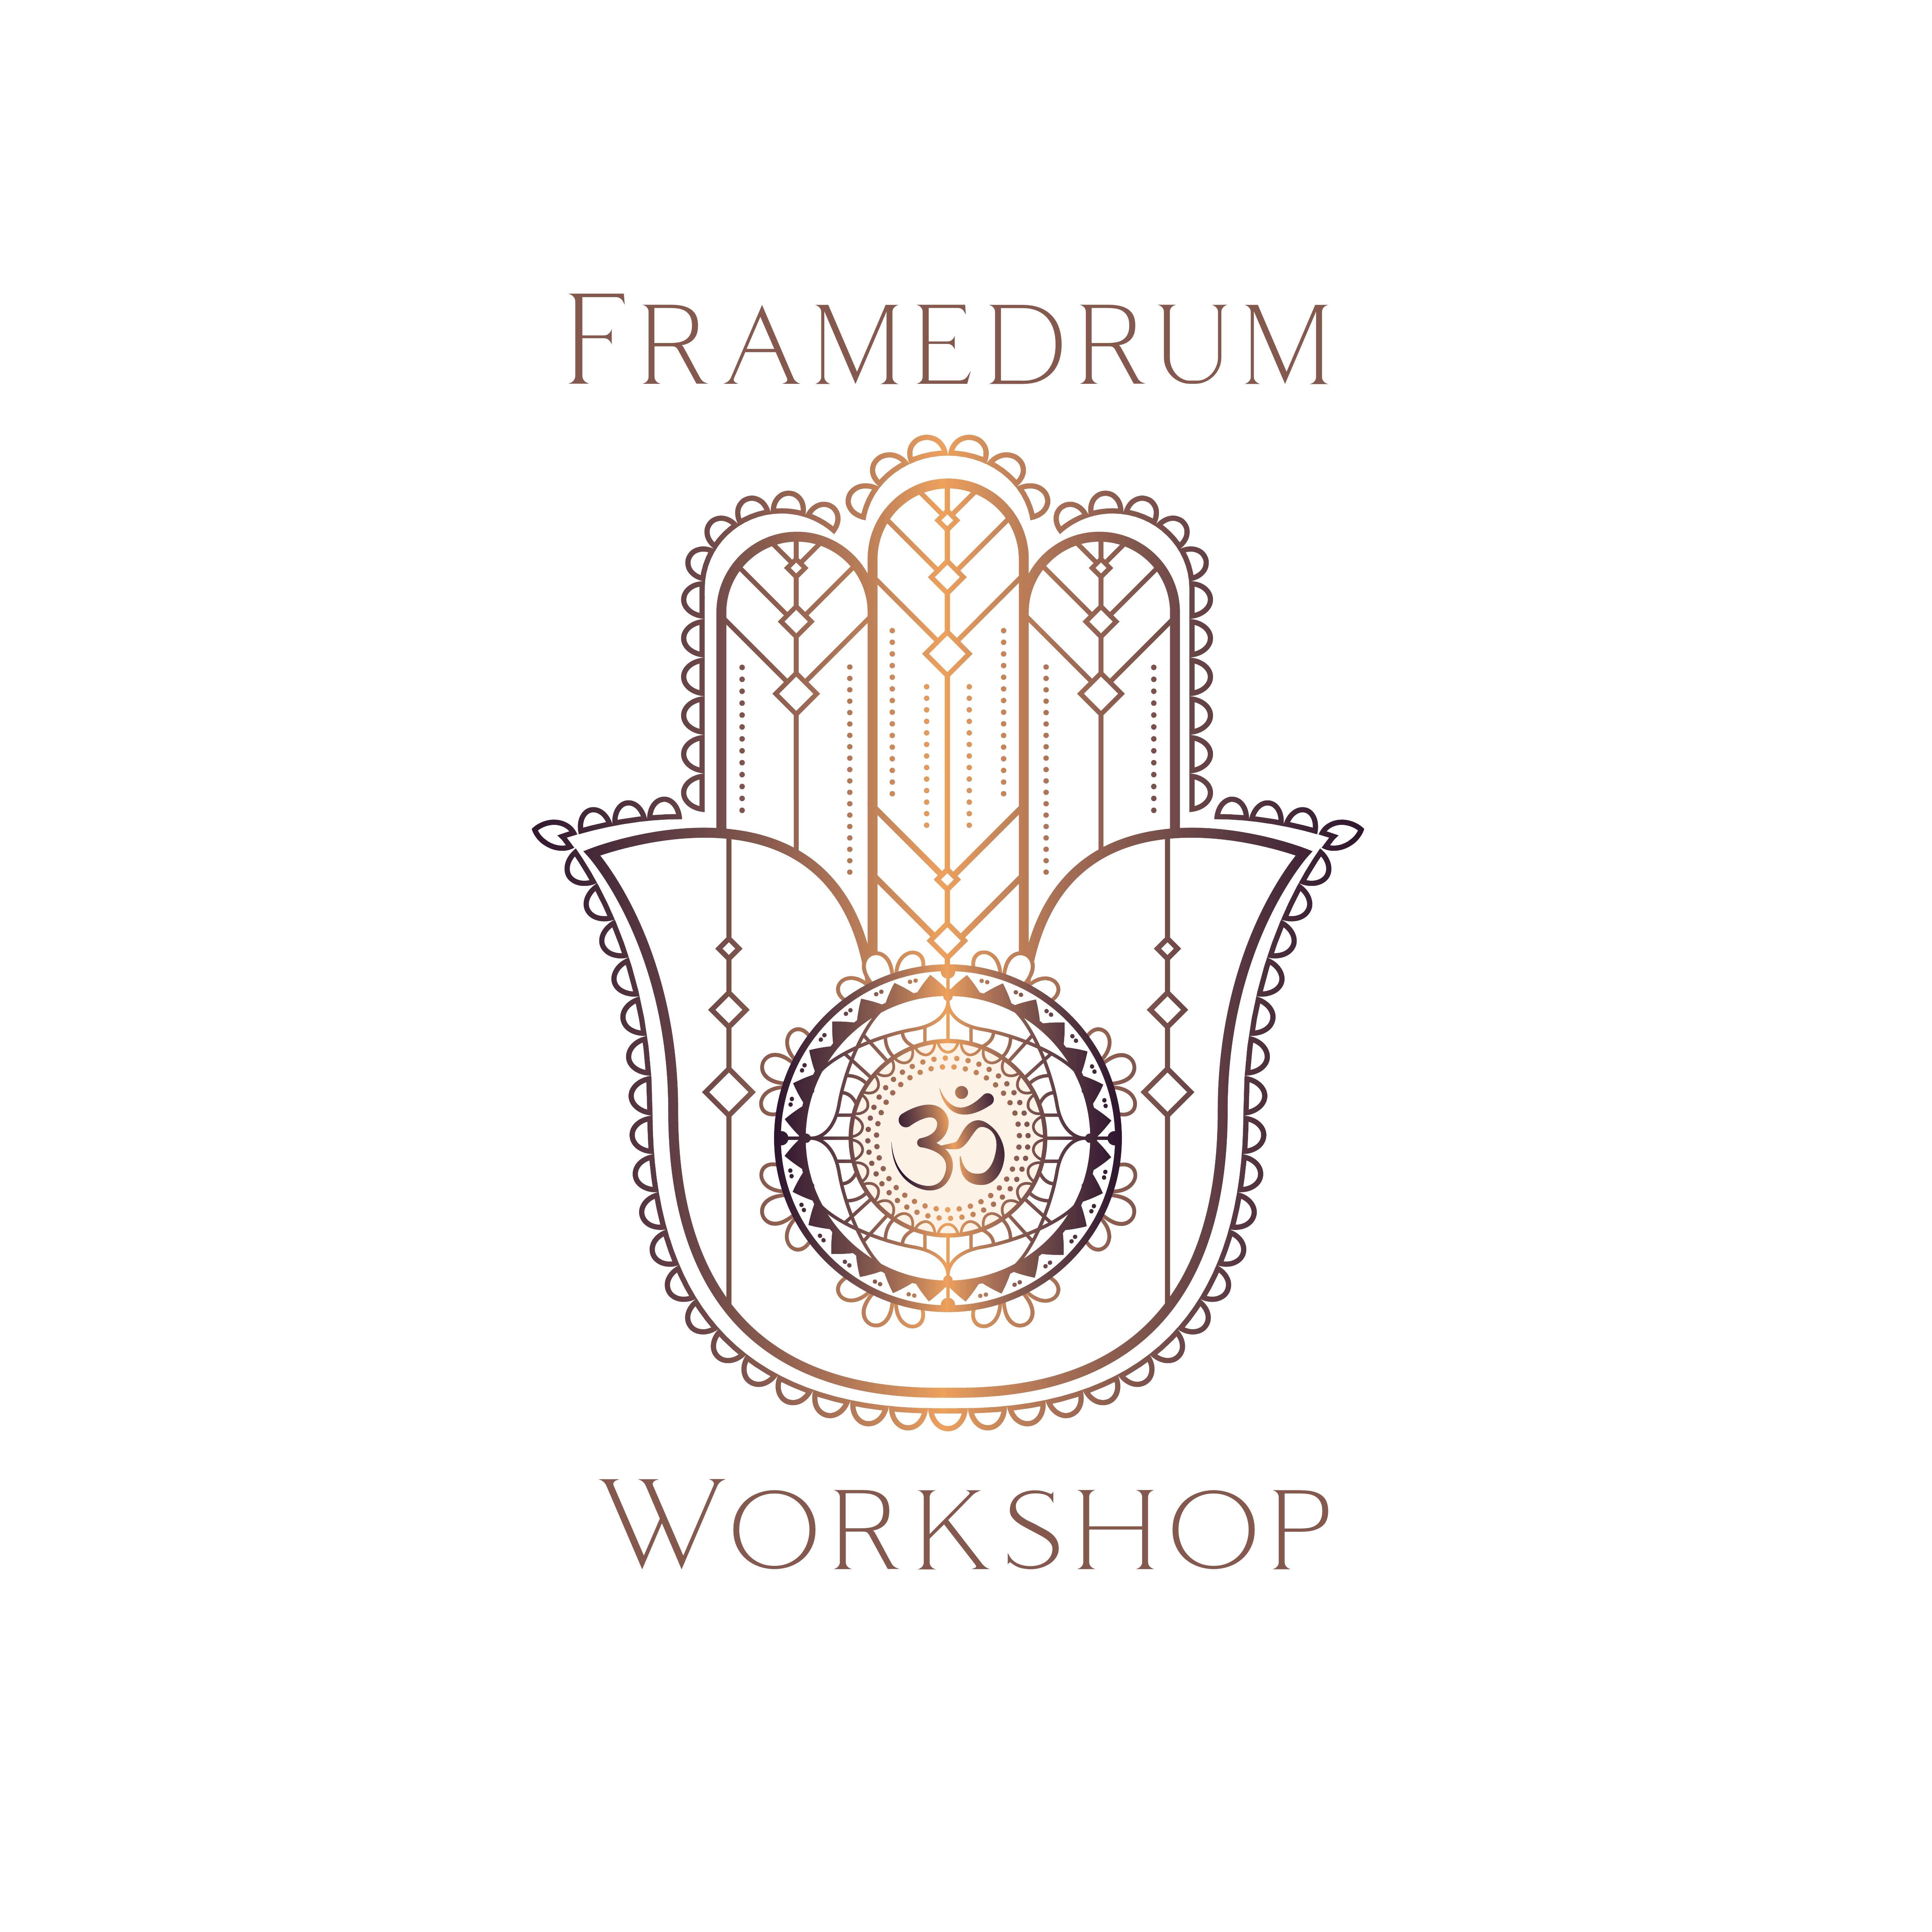 framedrumworkshop.nl